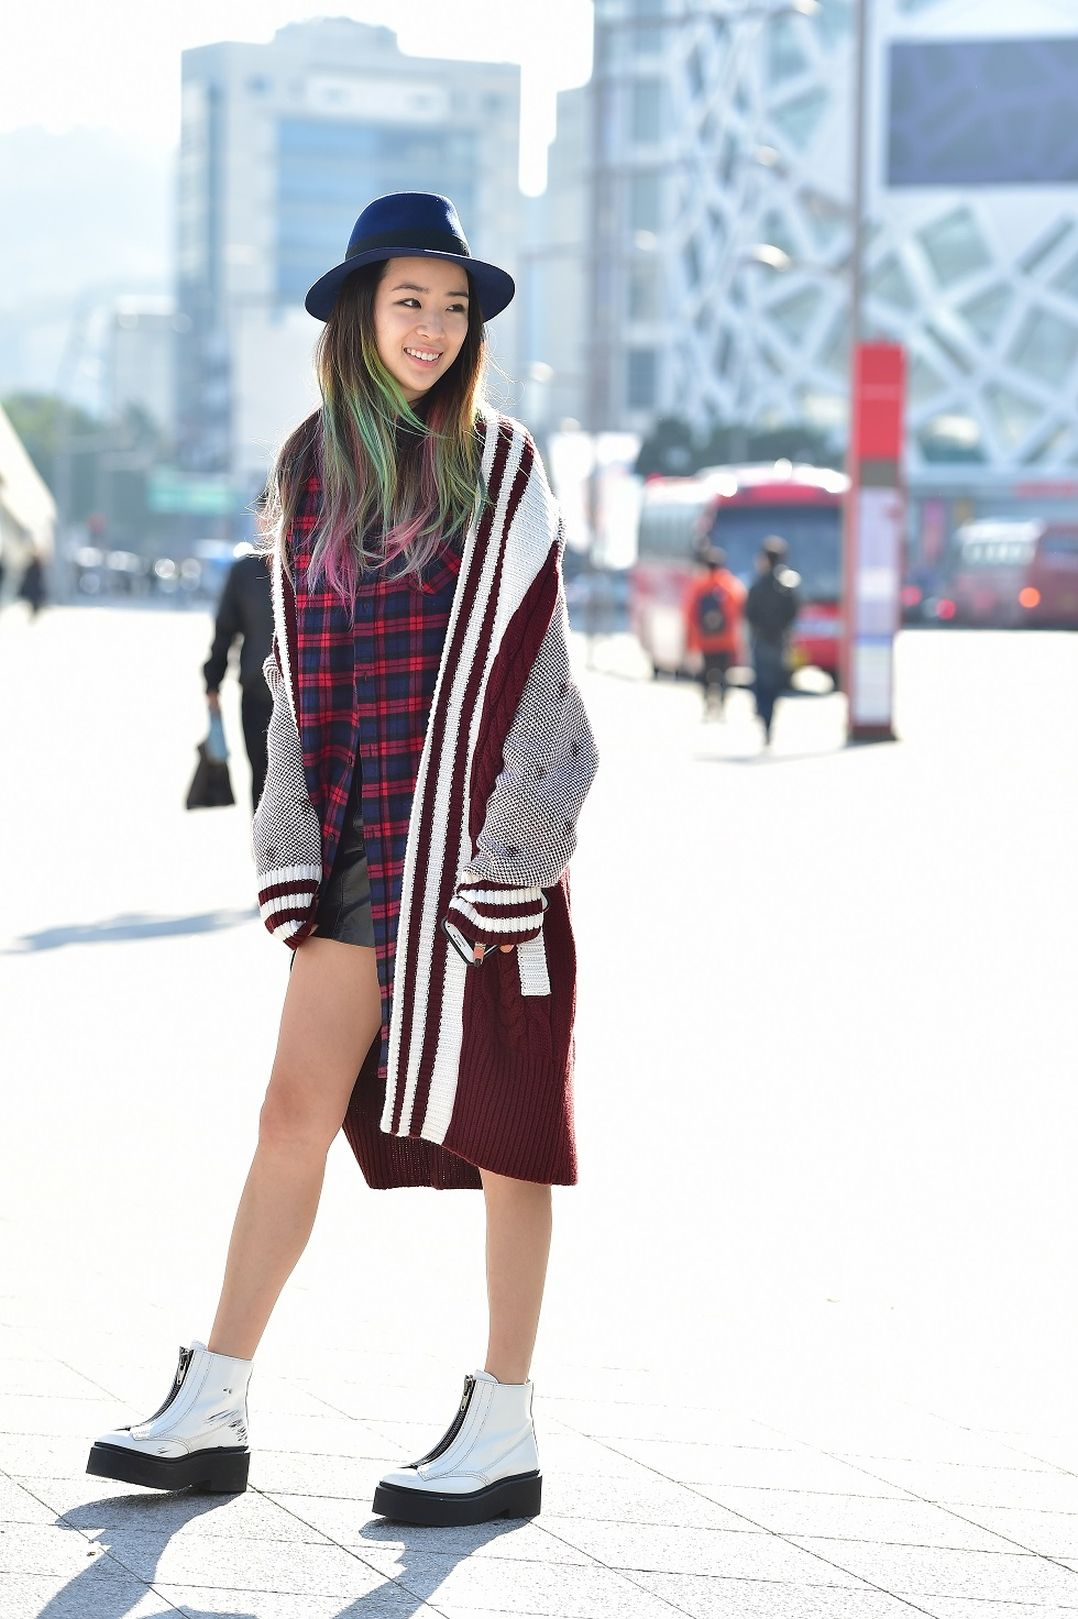 Korean Street Fashion Tumblr Fashion Pinterest Korean Street Fashion And Korean